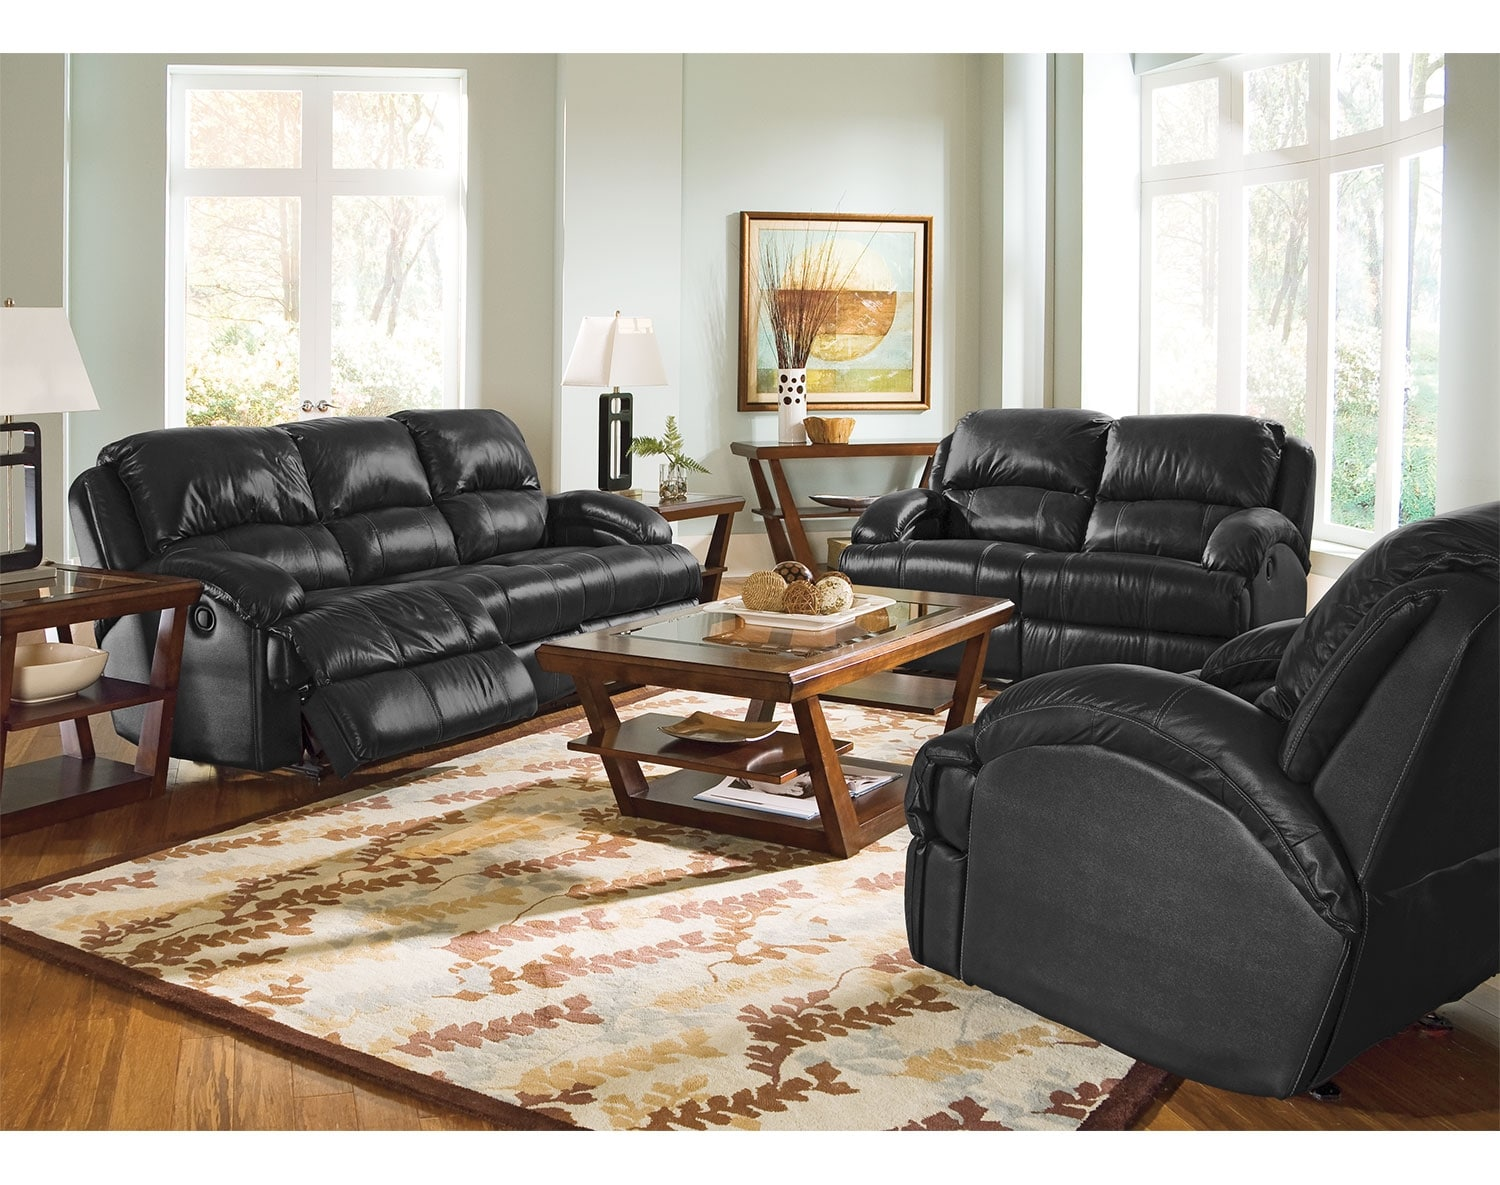 Leather Living Room Furniture American Signature Furniture